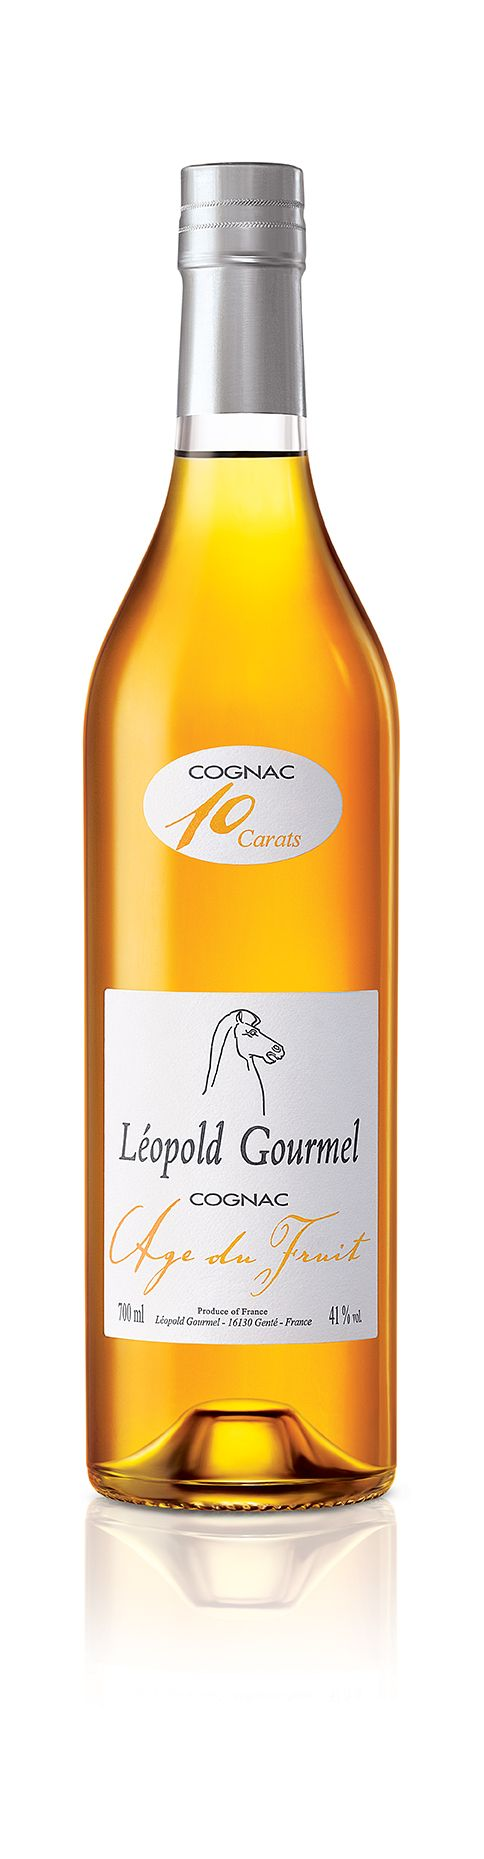 The #LeopoldGourmel 10 Carats #Cognac has a pleasant roundness of matured fruits with notes of citrus. This maturity with a hidden strength makes the cognac last and remain neat, clean and straight. This grand 10 year old cognac can well complement Asian cuisine.